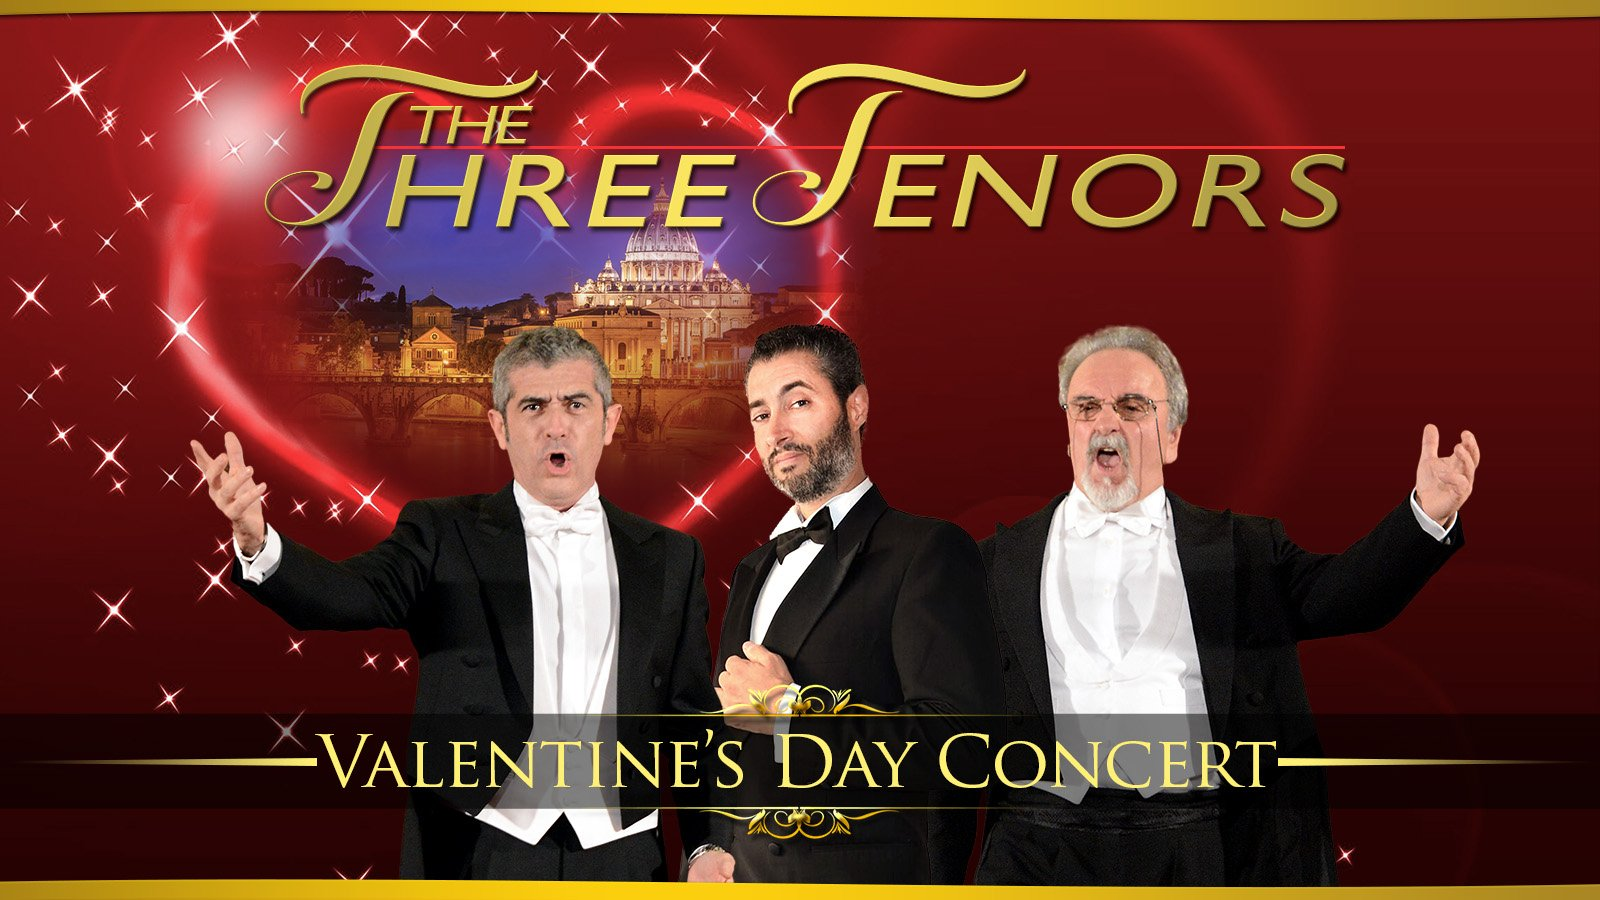 Valentine's Day Concert with The Three Tenors